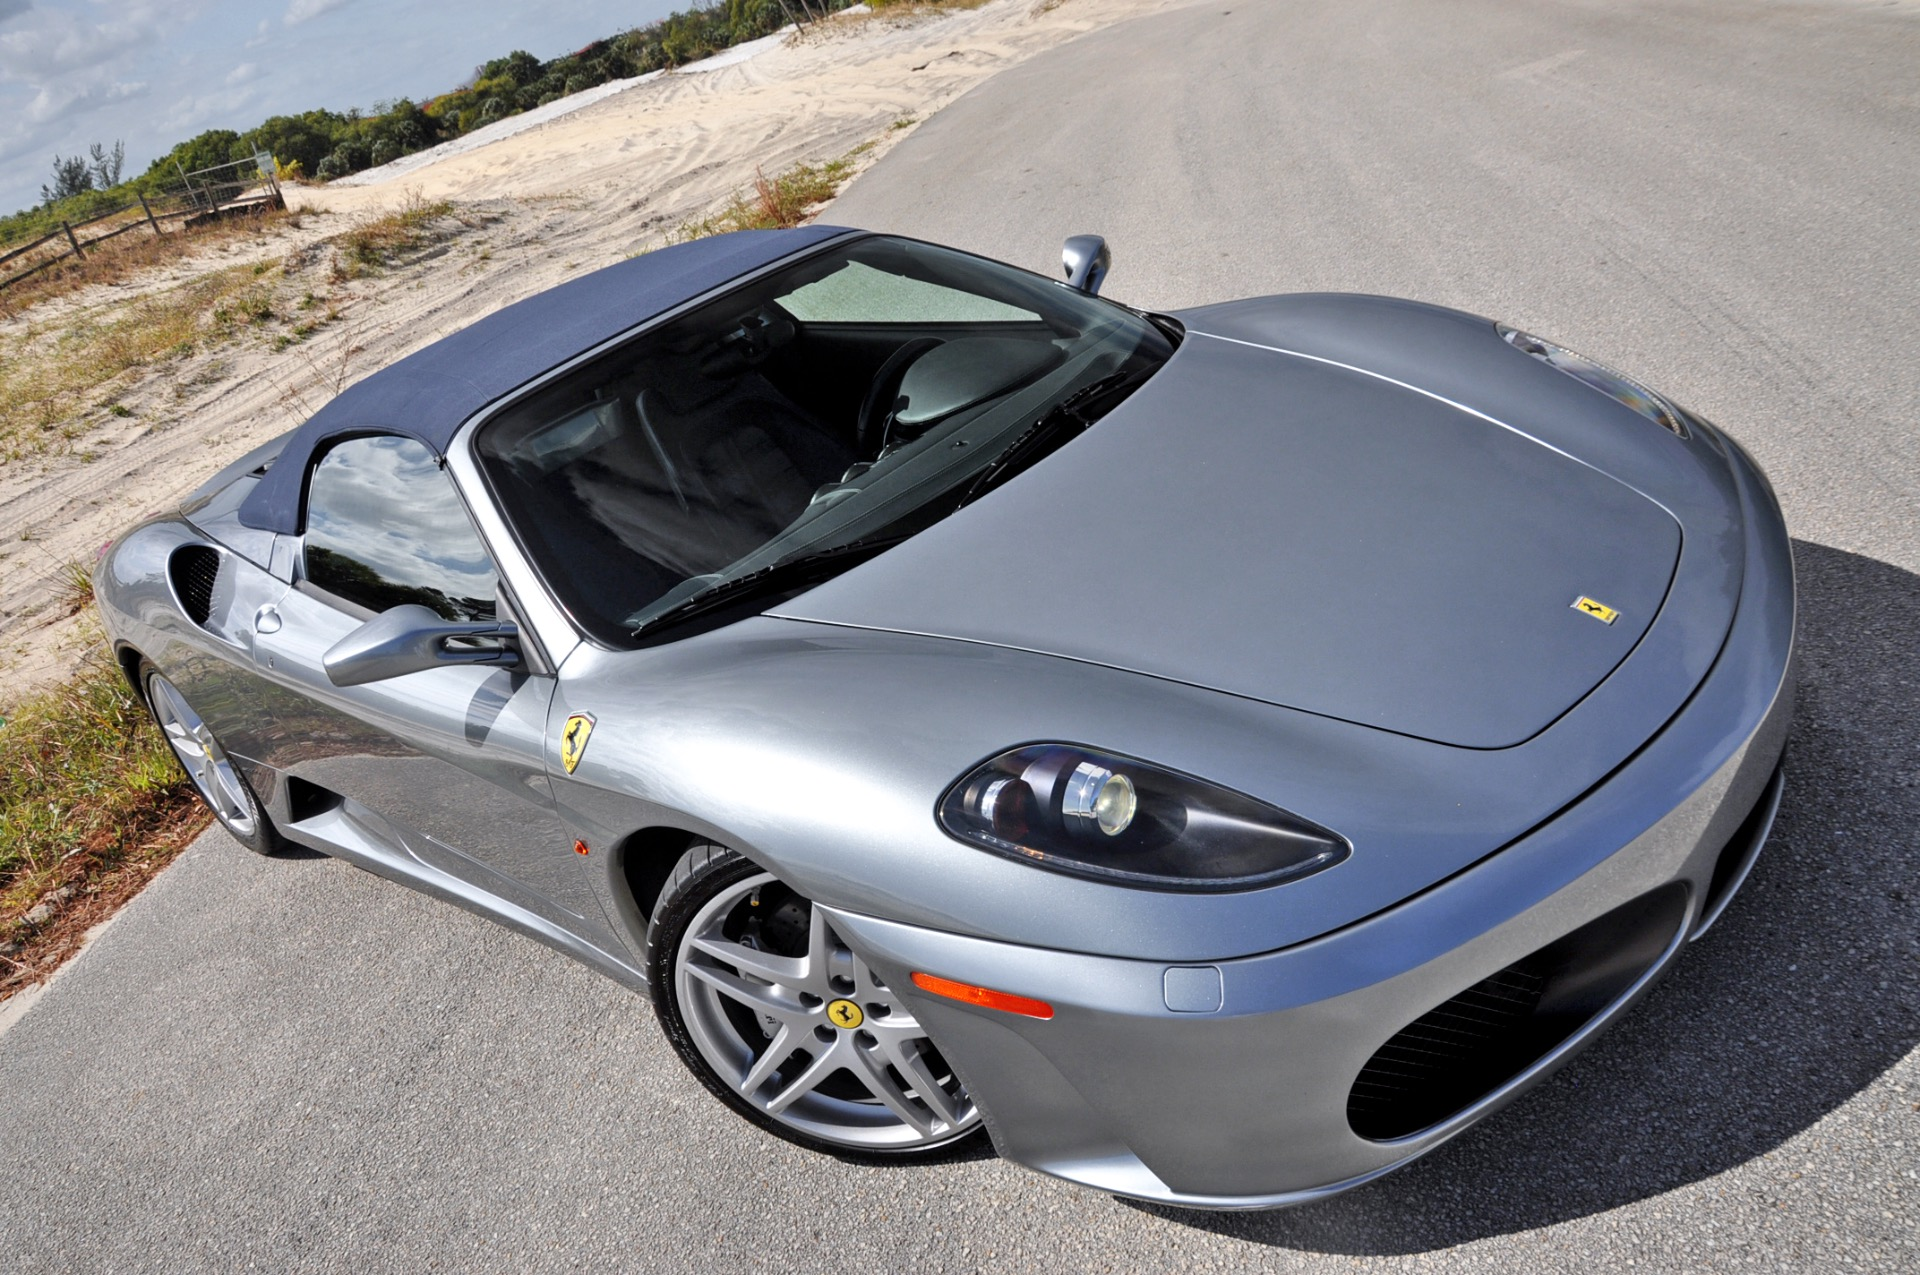 2005 ferrari f430 spider spider stock 5909 for sale near. Black Bedroom Furniture Sets. Home Design Ideas